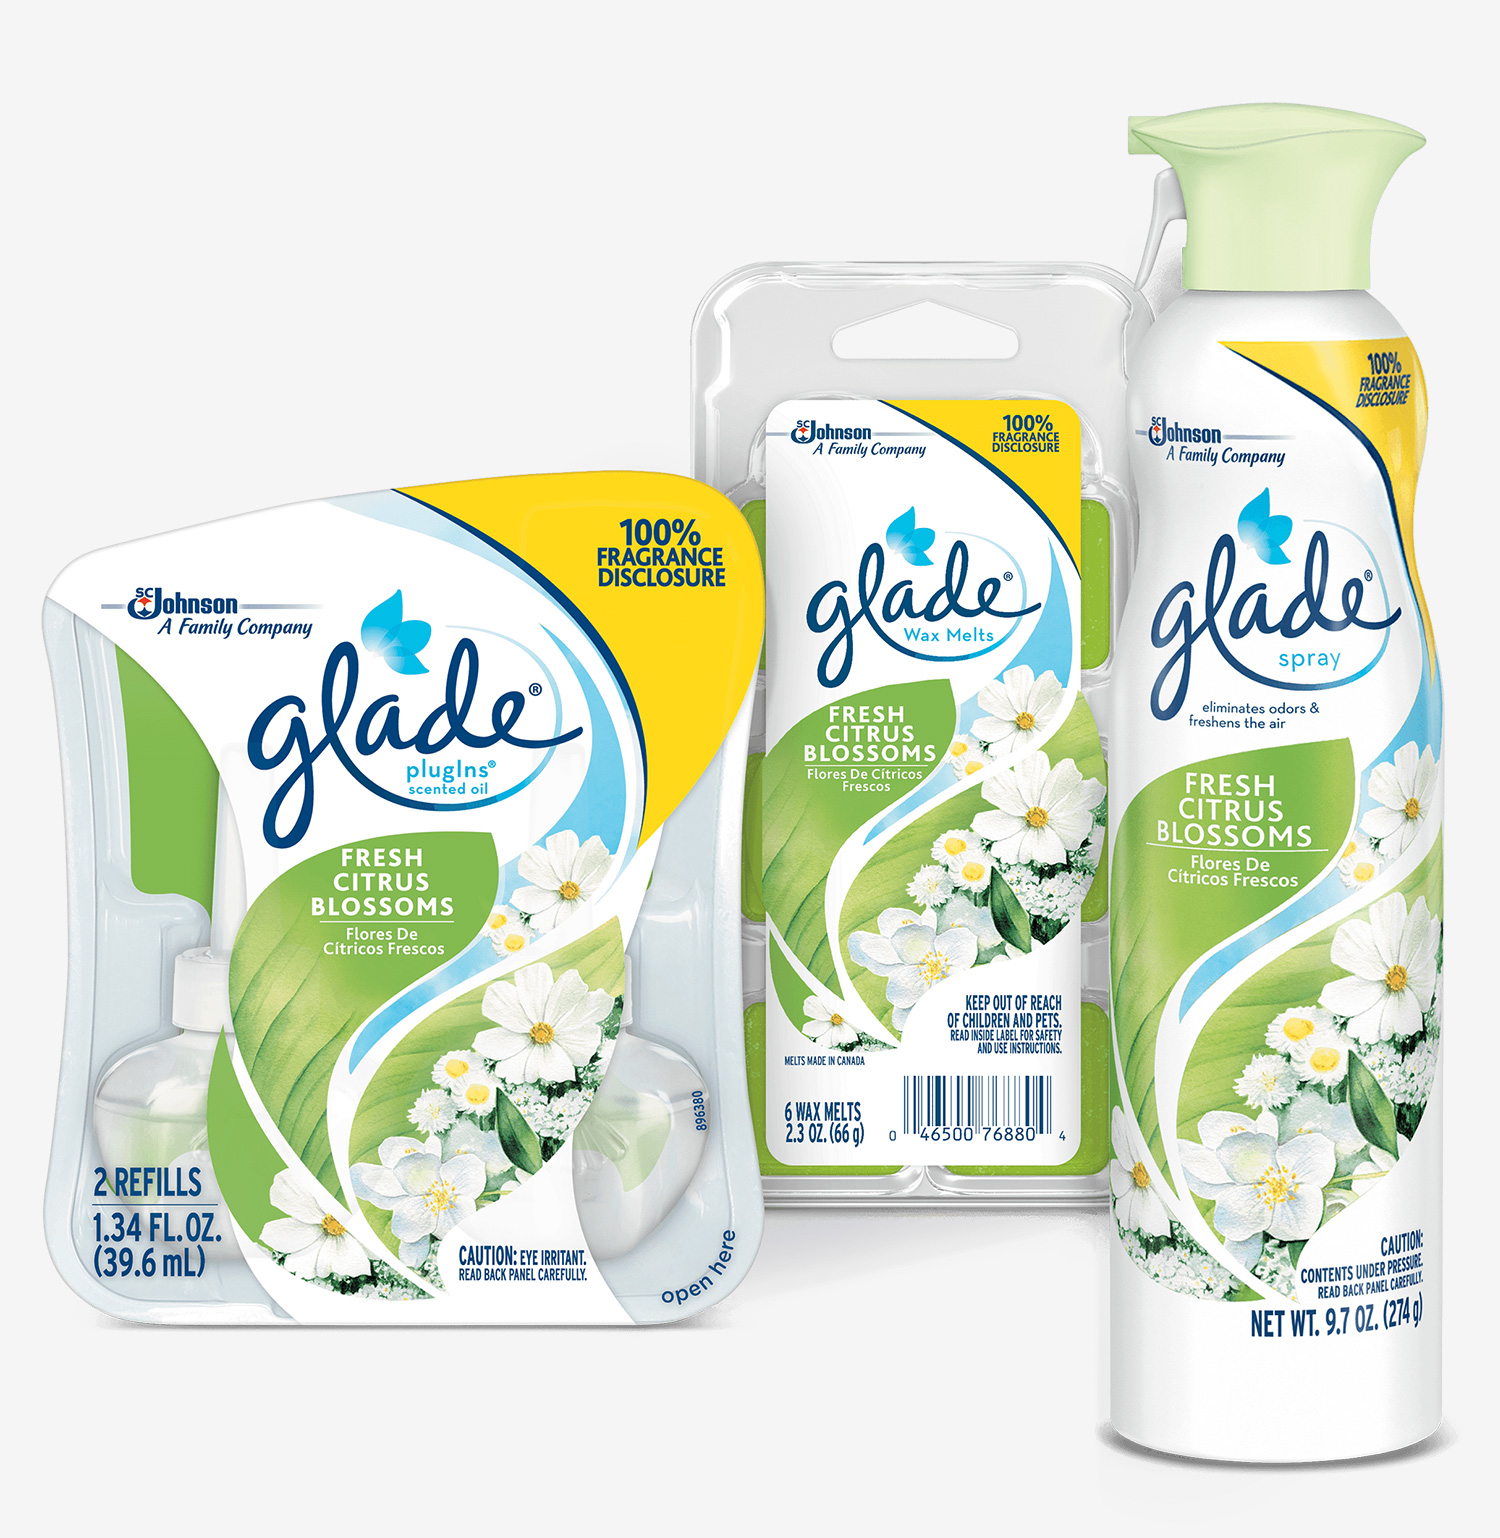 SC Johnson discloses fragrance ingredients in Glade® Fresh Citrus Blossoms collection